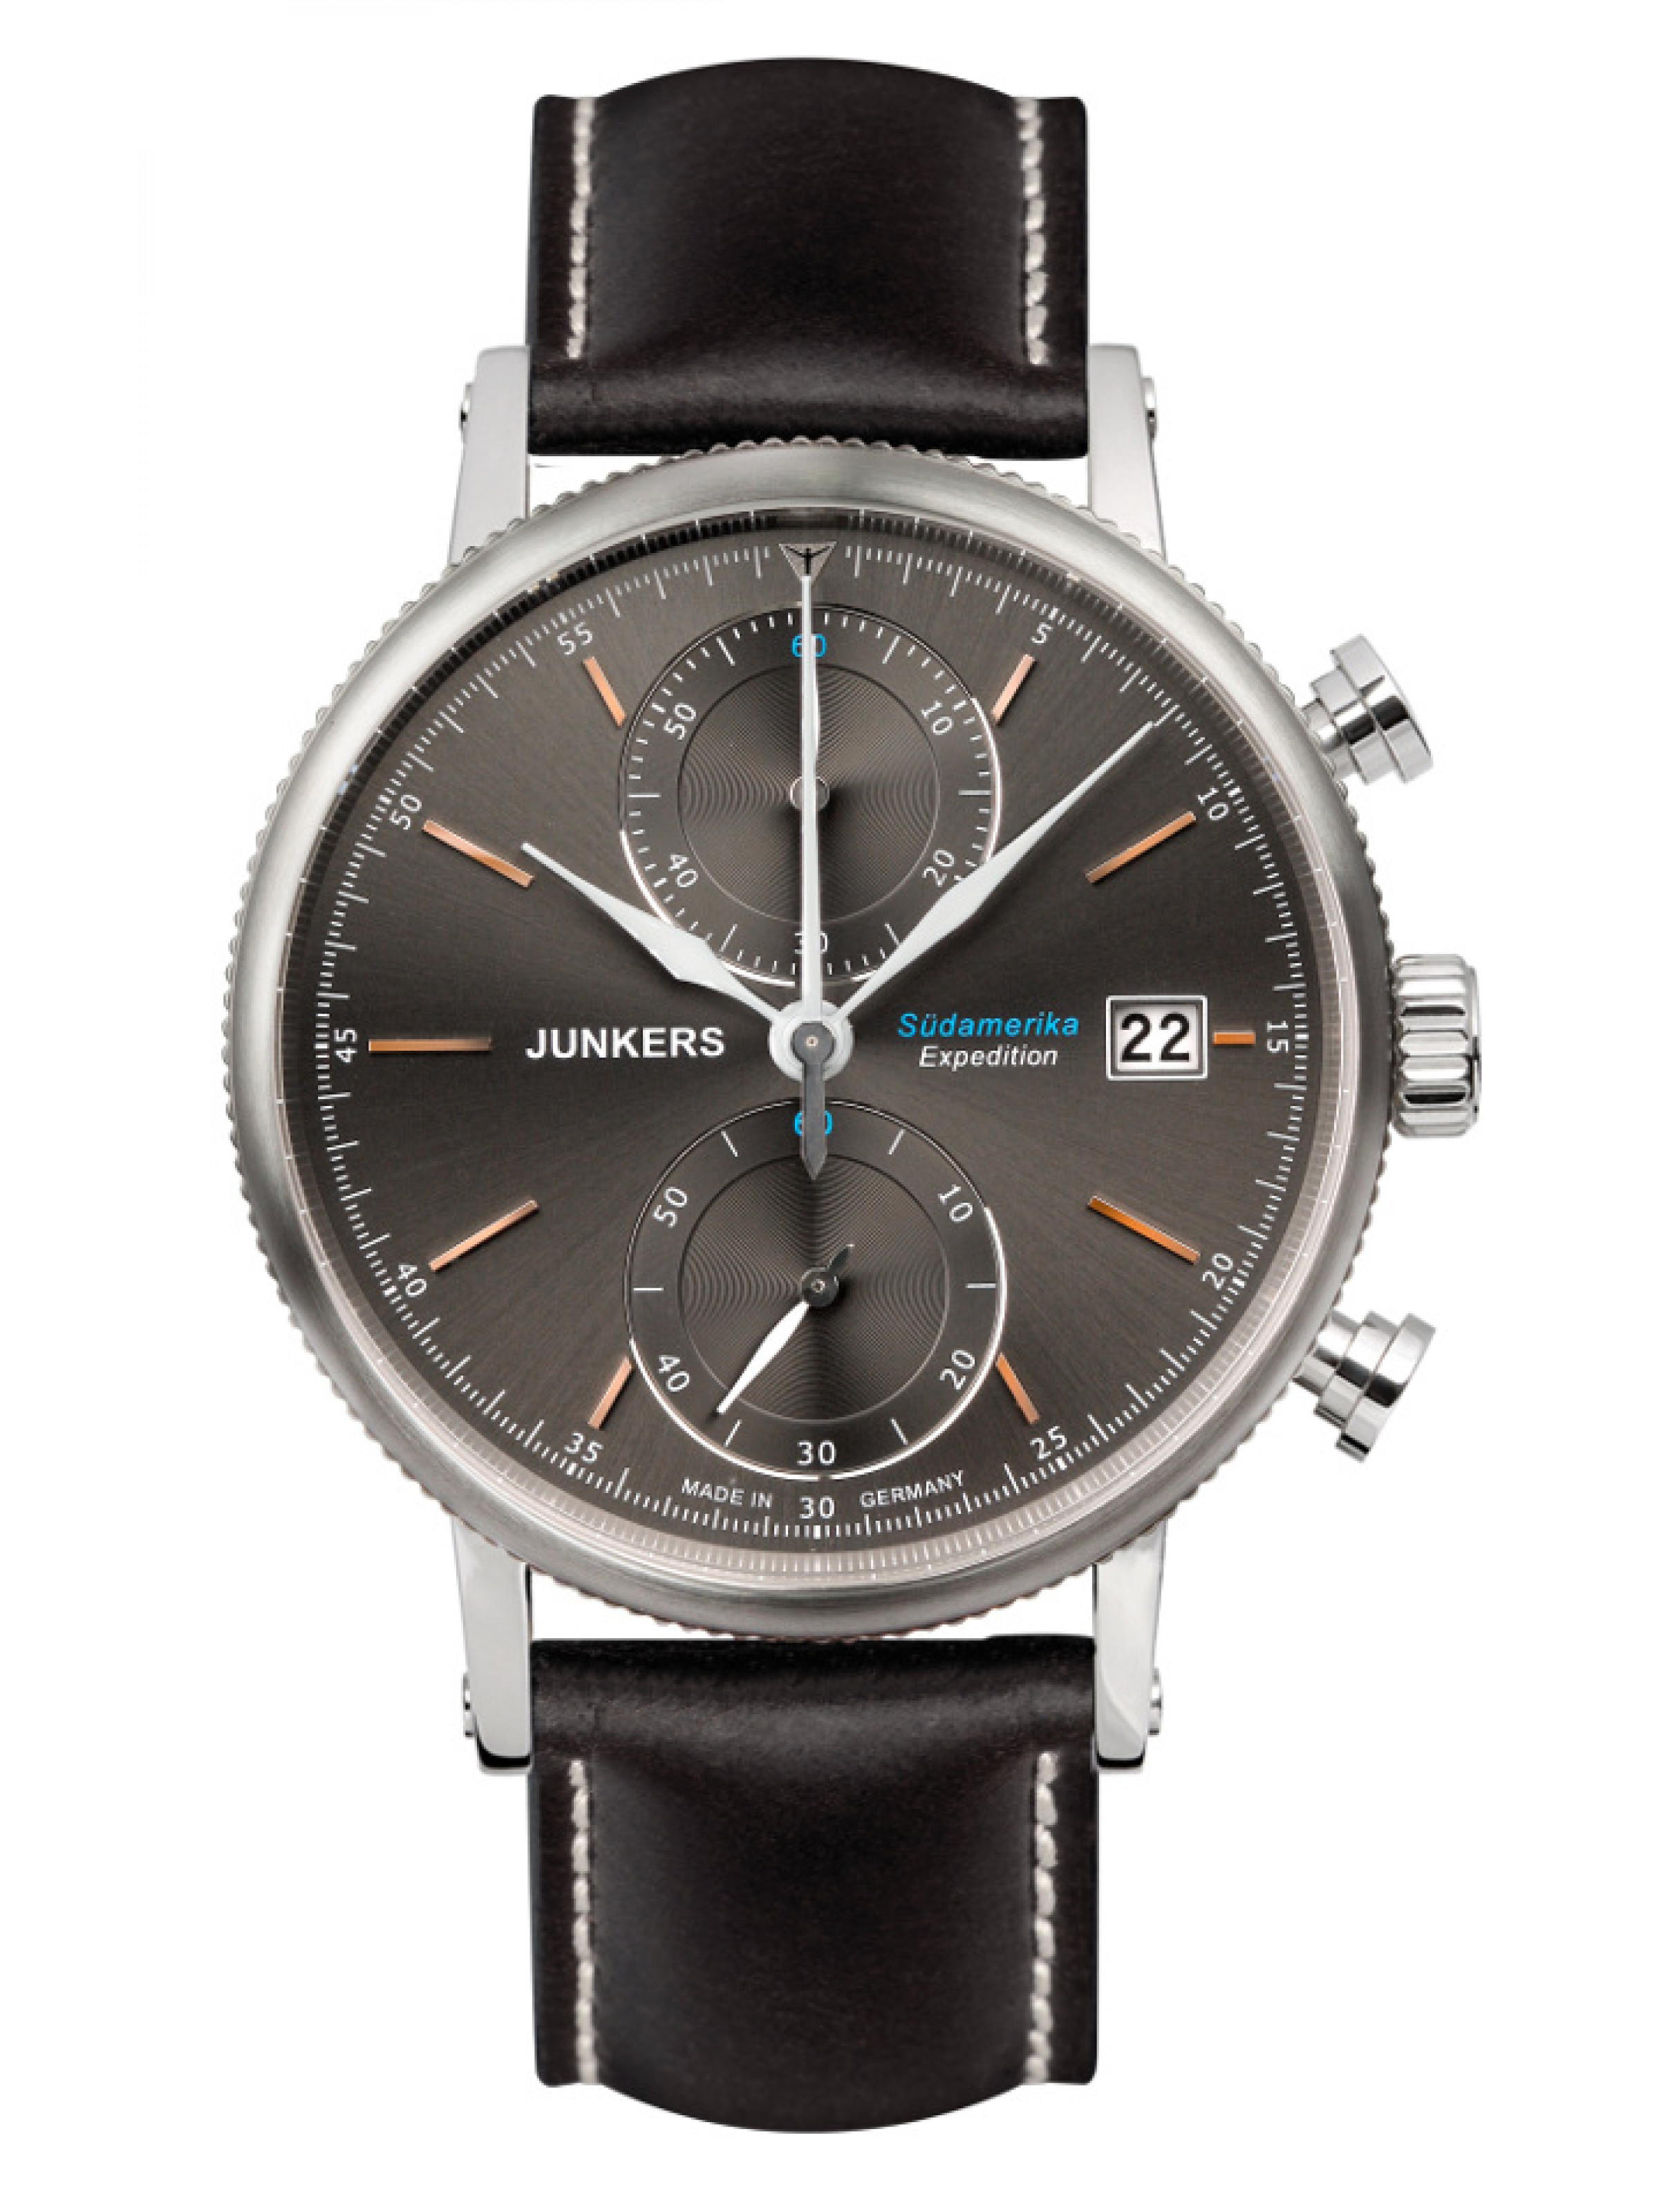 Junkers Expedition Südamerika Chronograph 6588-2